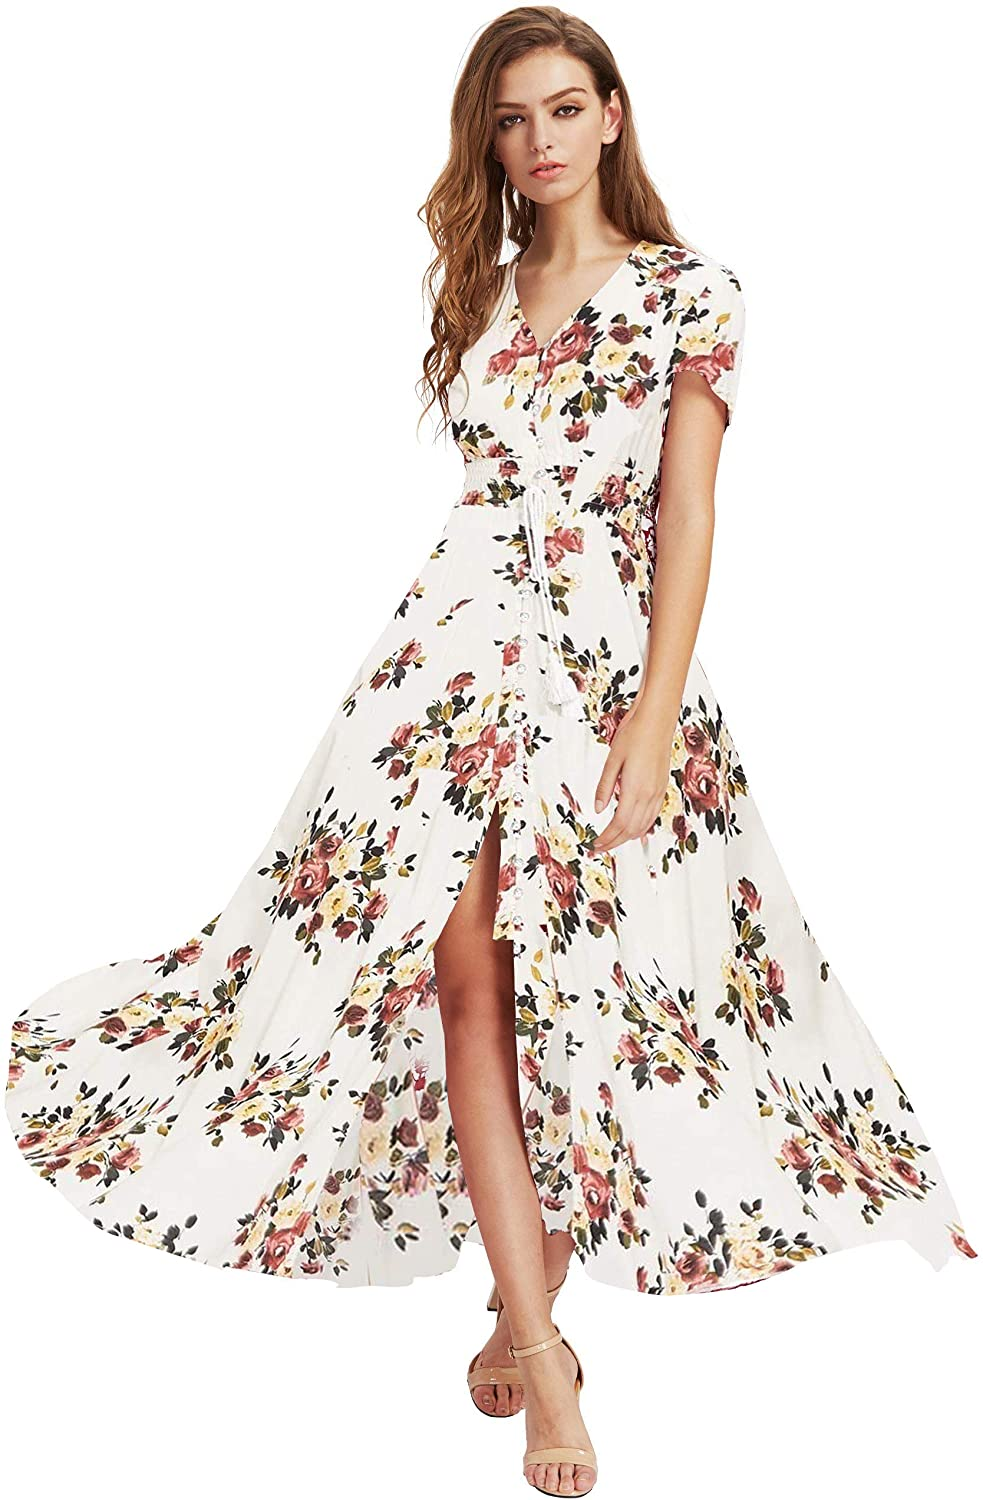 Milumia Women Button Up Floral Print Party Split Flowy Maxi Dress